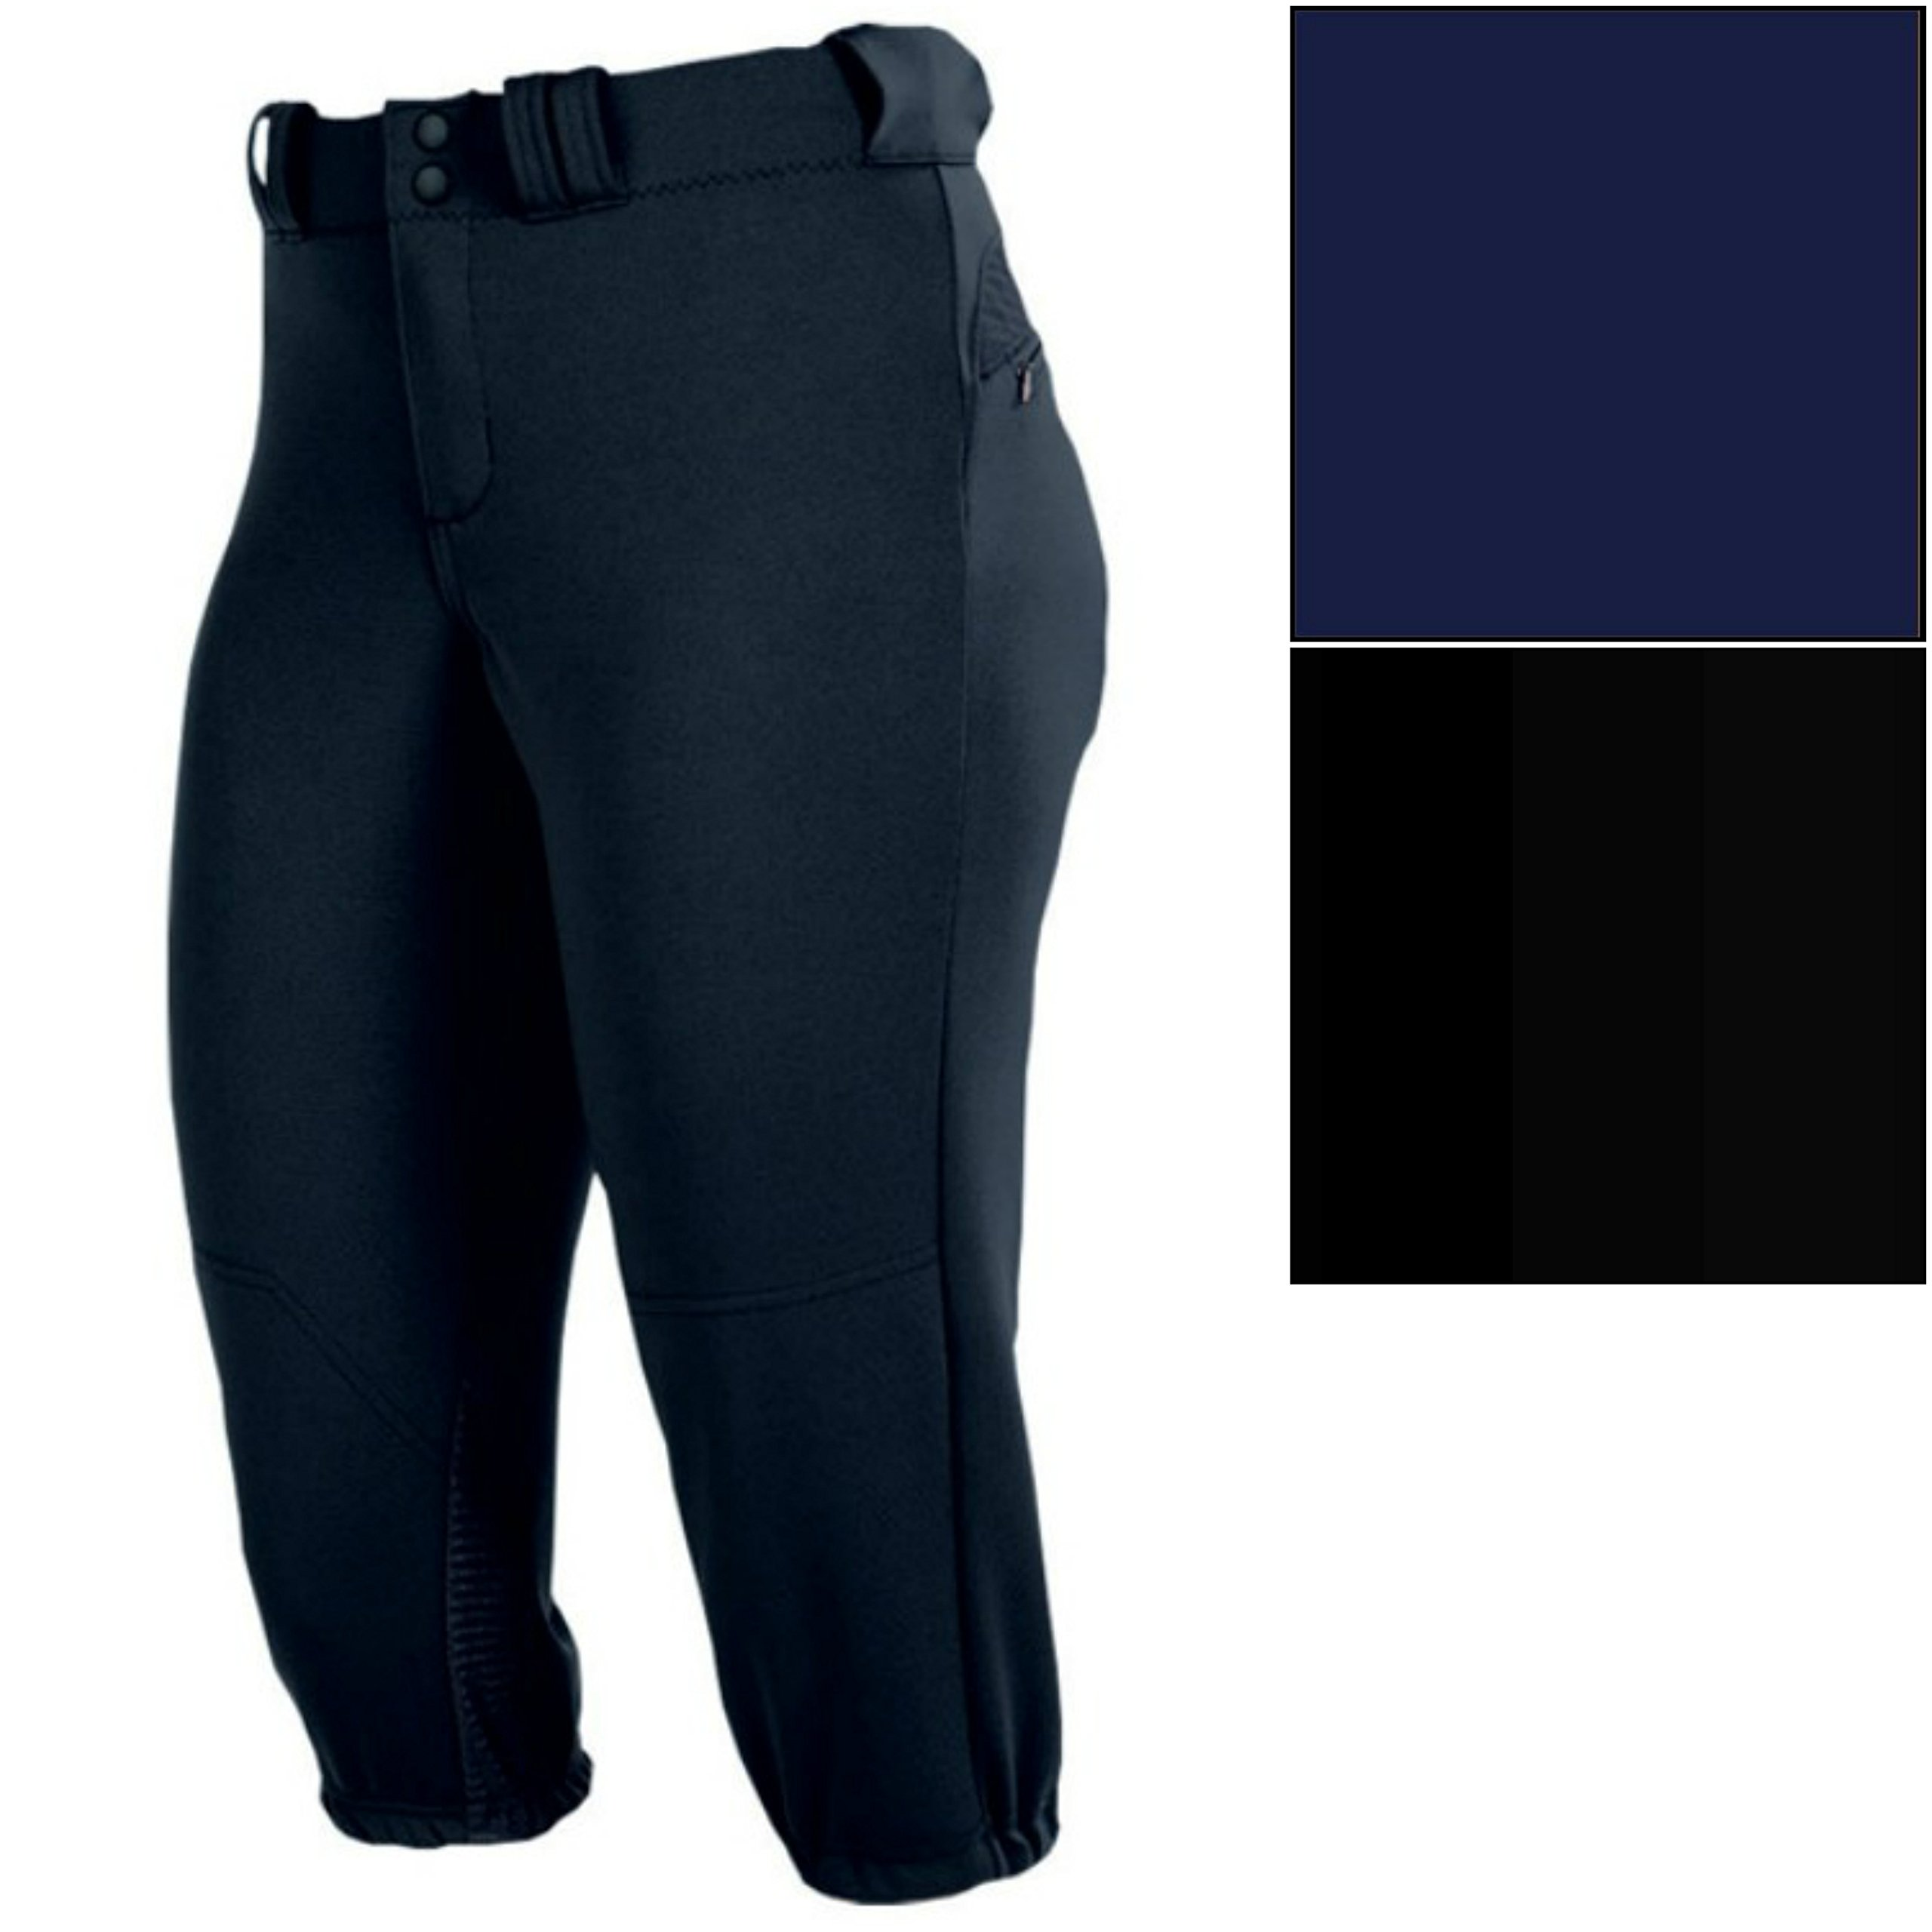 ec992f87e44 Russell Athletic Women s Low Rise Knicker Diamond Fit Series Softball Pant  product image